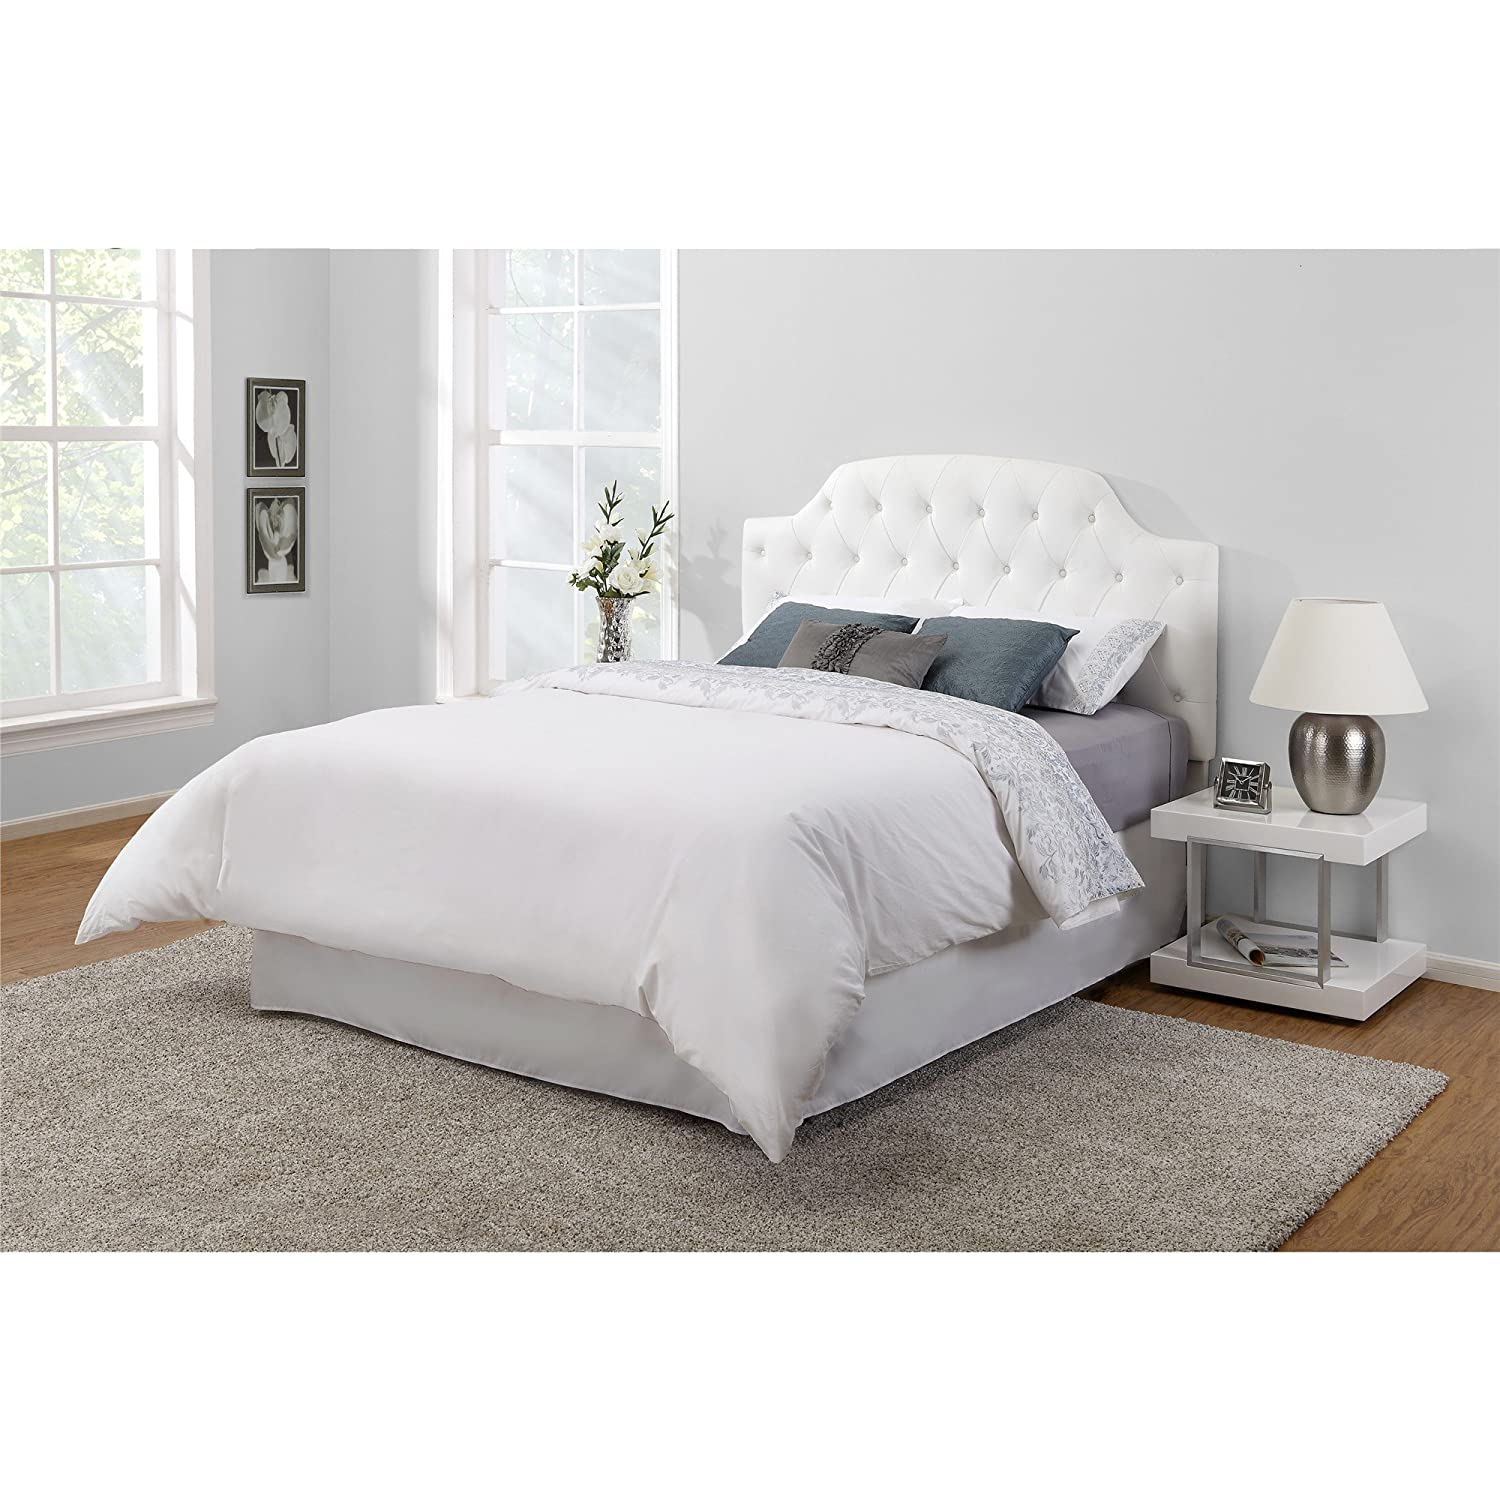 amazoncom white modern button tufted faux leather headboard it accomodates most full and queen size frames this padded bed frame is adjustable to